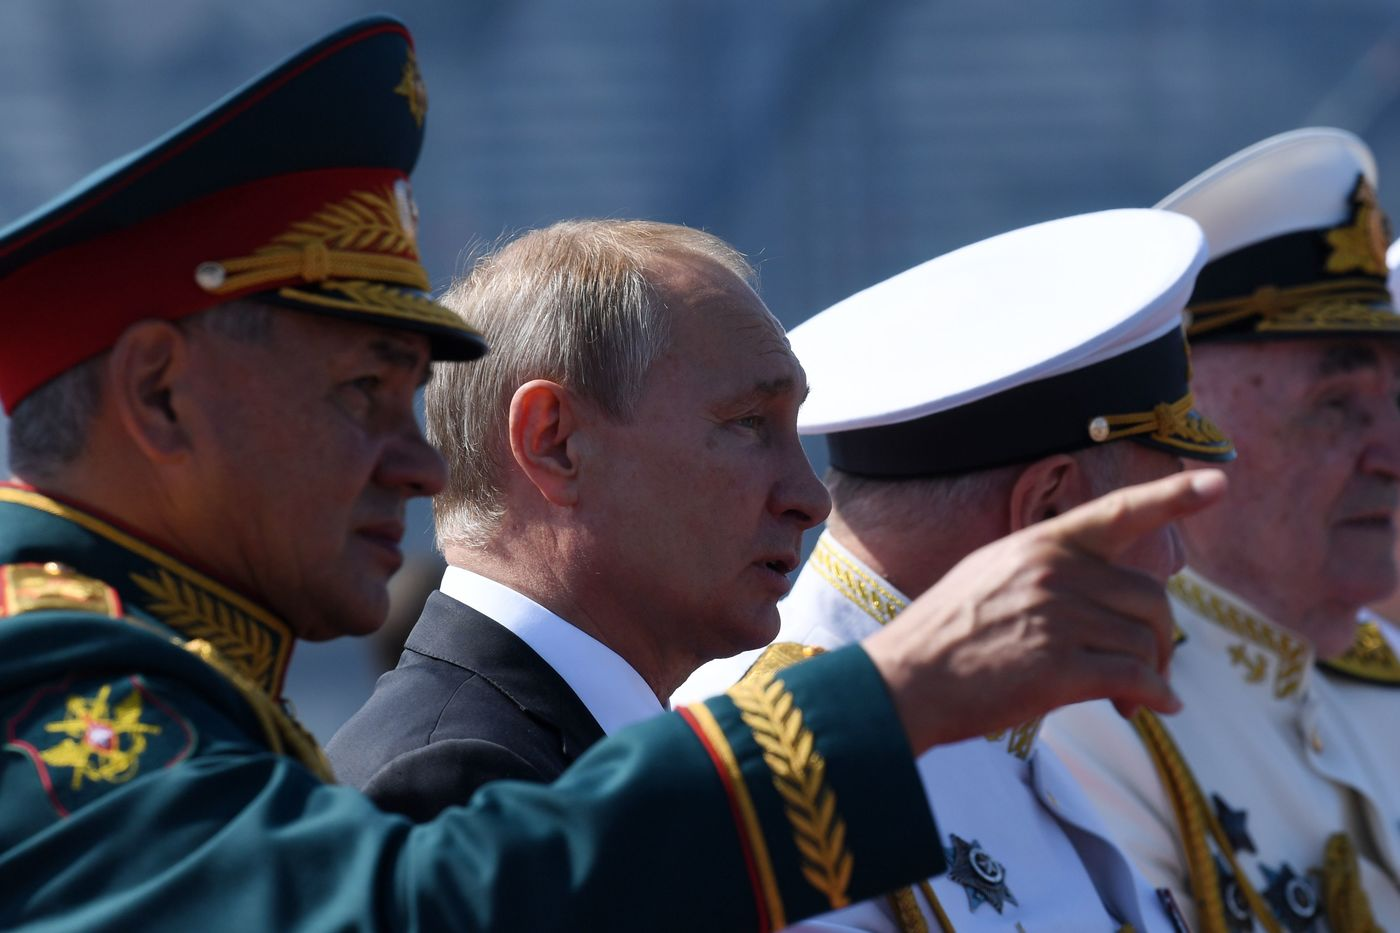 Russian President Vladimir Putin and Defence Minister Sergei Shoigu watch the Navy Day parade in Saint Petersburg on July 29, 2018. / AFP PHOTO / Kirill KUDRYAVTSEV